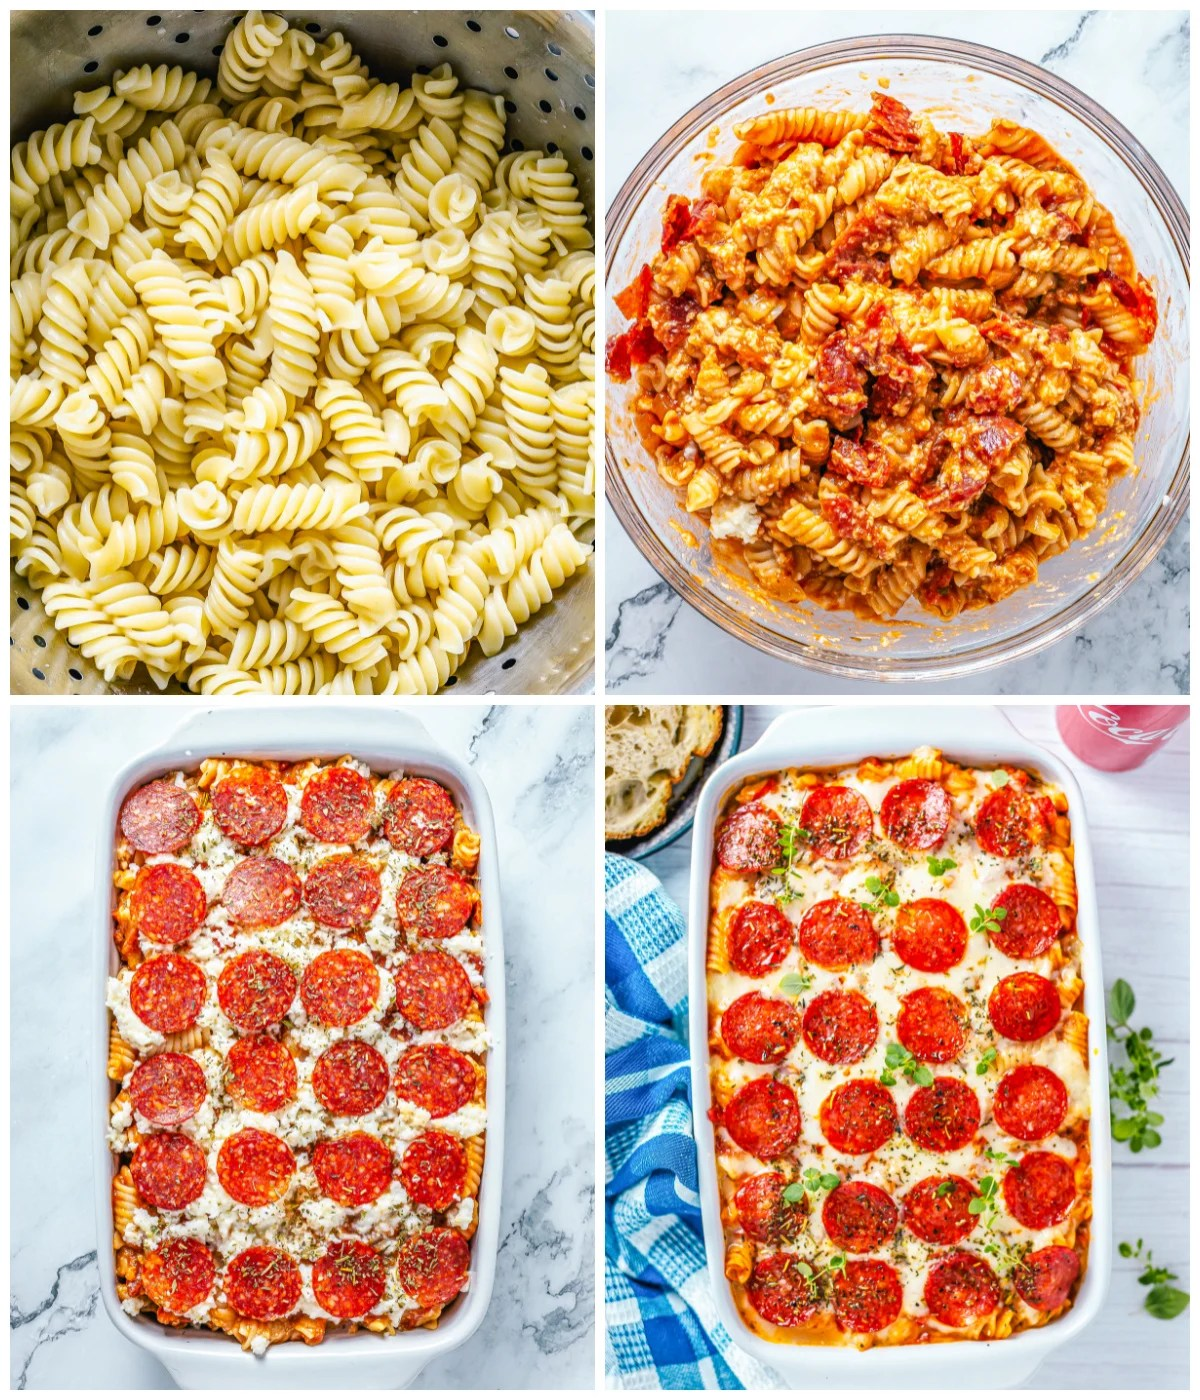 Step by step photos on how to make Pizza Pasta Bake